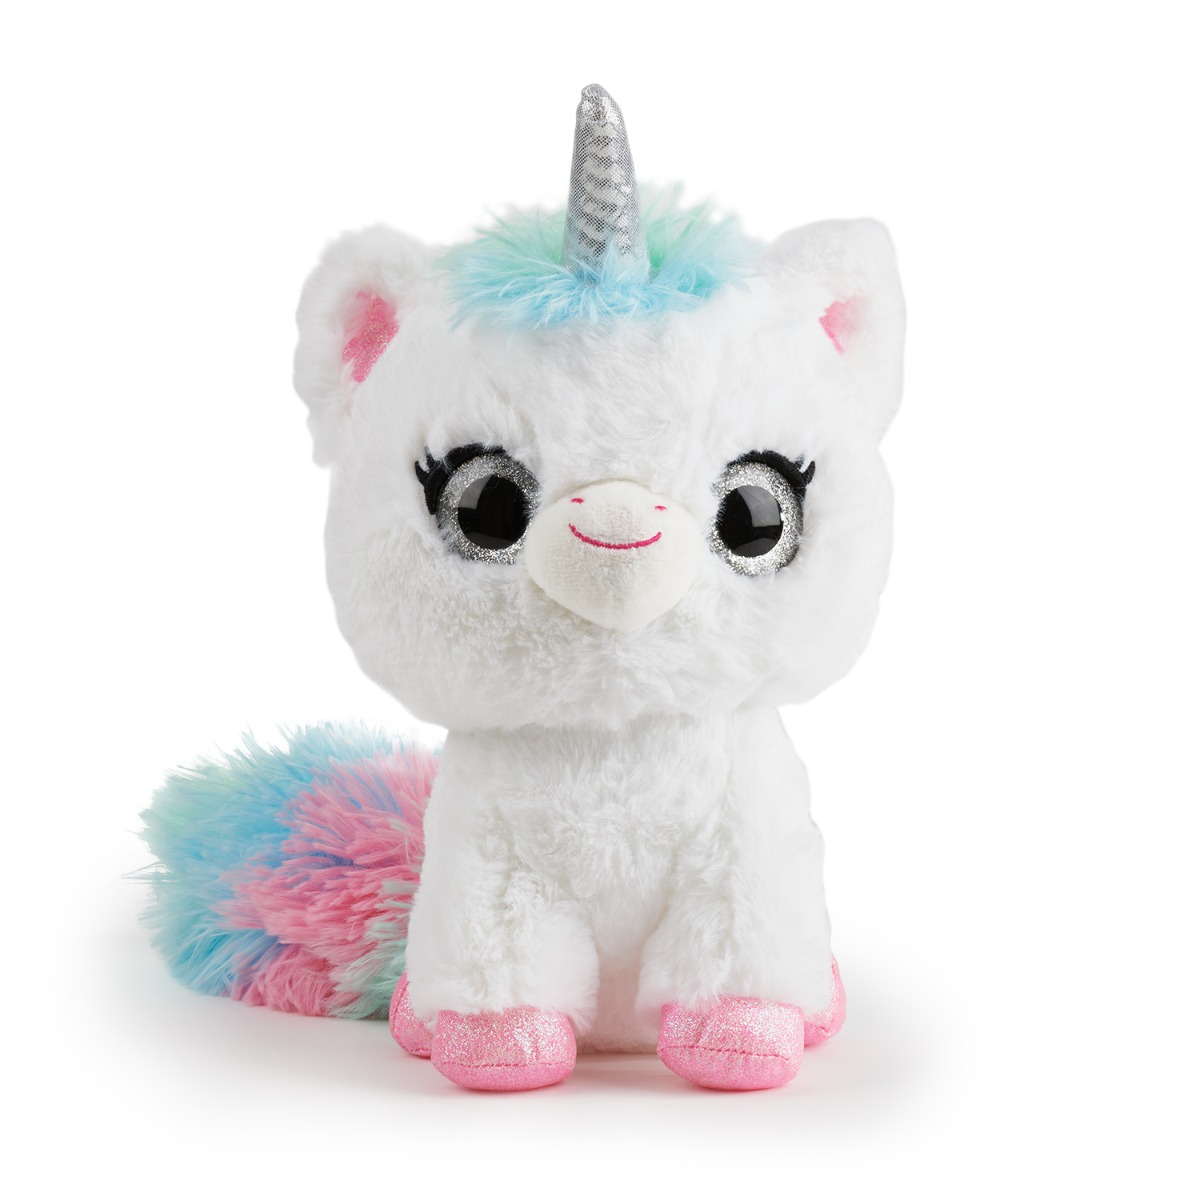 Jucarie interactiva de plus Glowcorns - Unicorn